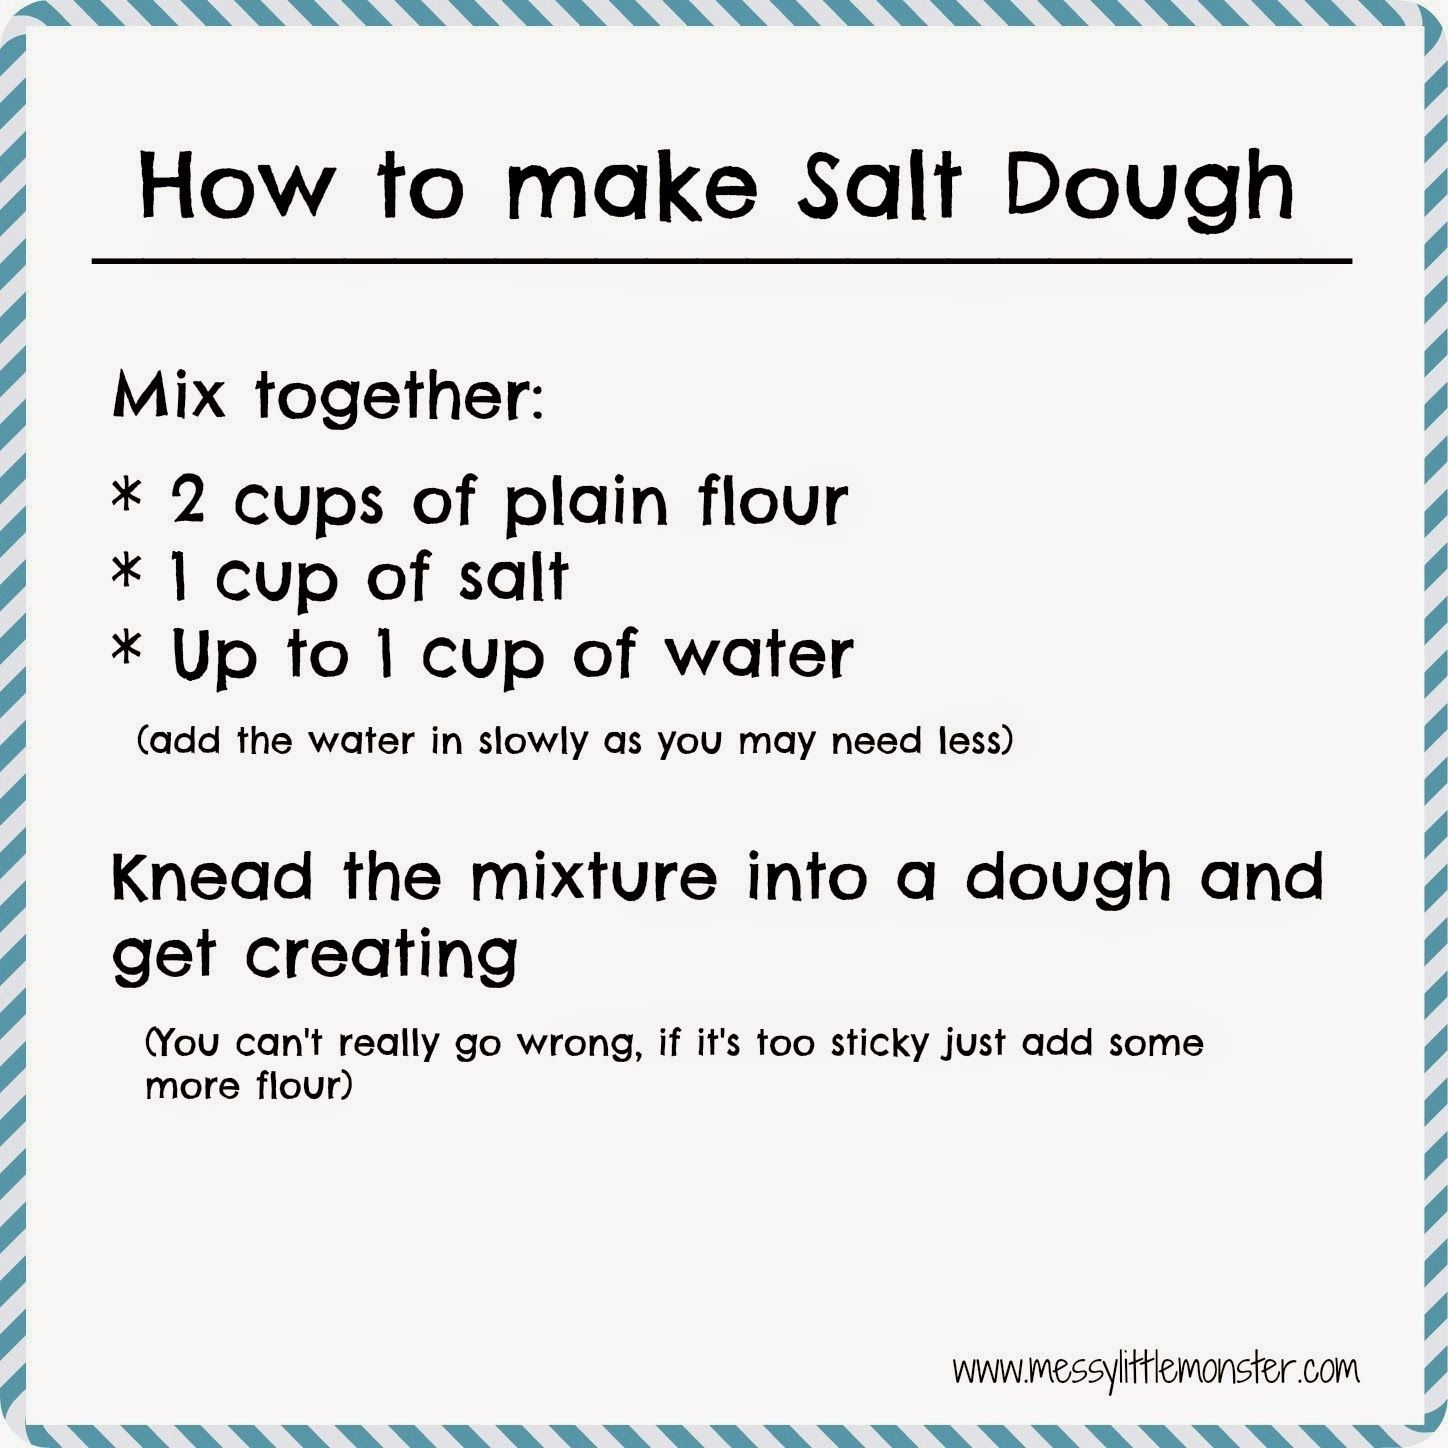 How to make salt dough - Easy salt dough recipe and craft ideas from Messy Little Monster